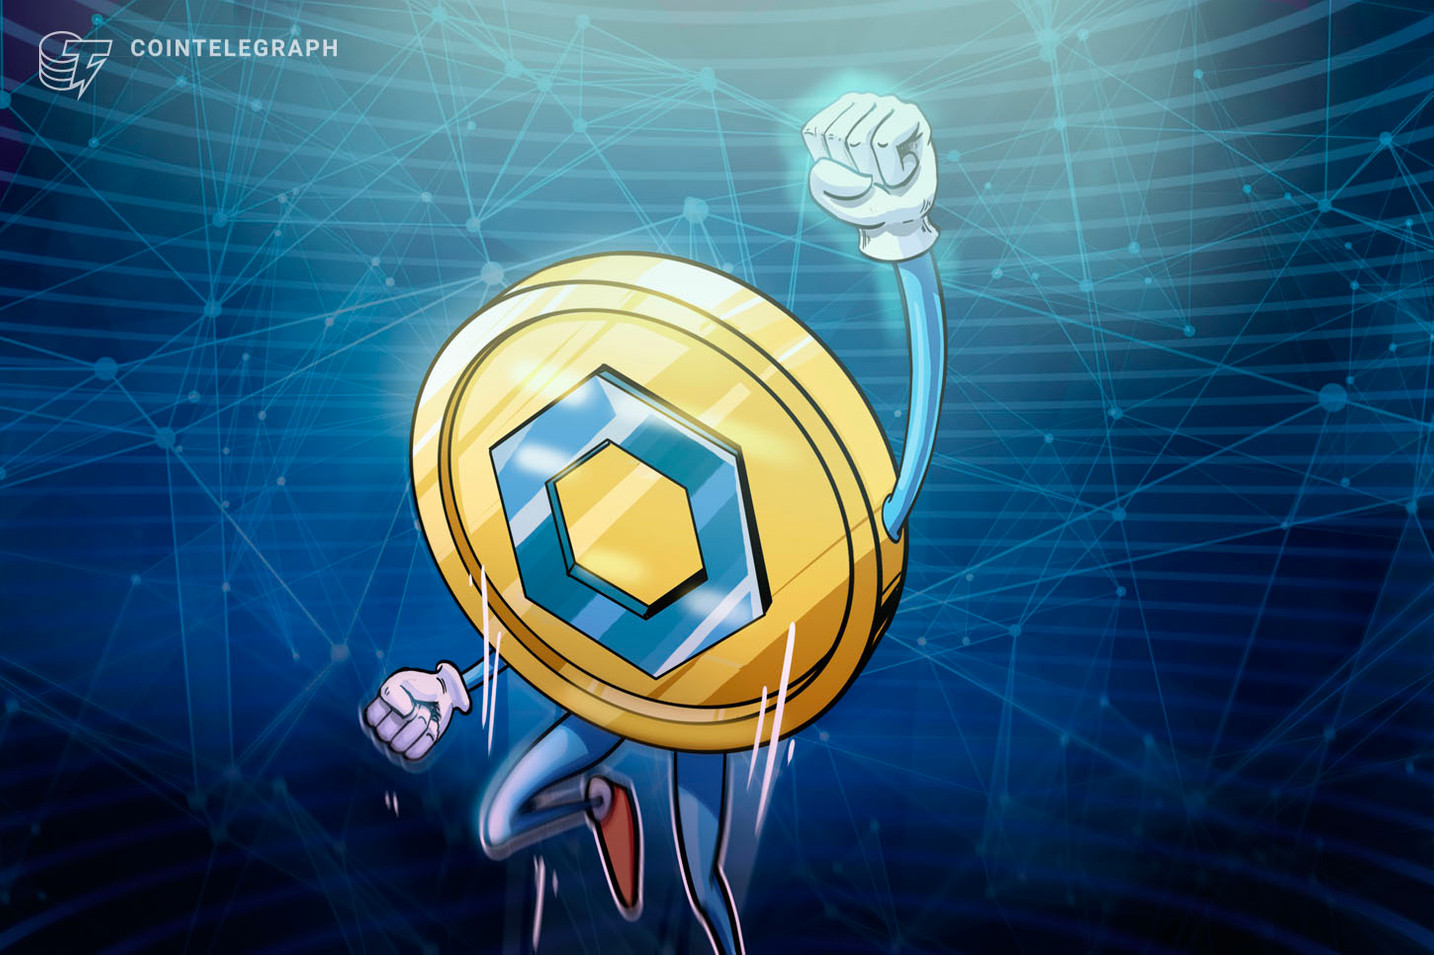 Chainlink Reaches New LINK Price All-Time High Eyeing $10 Next